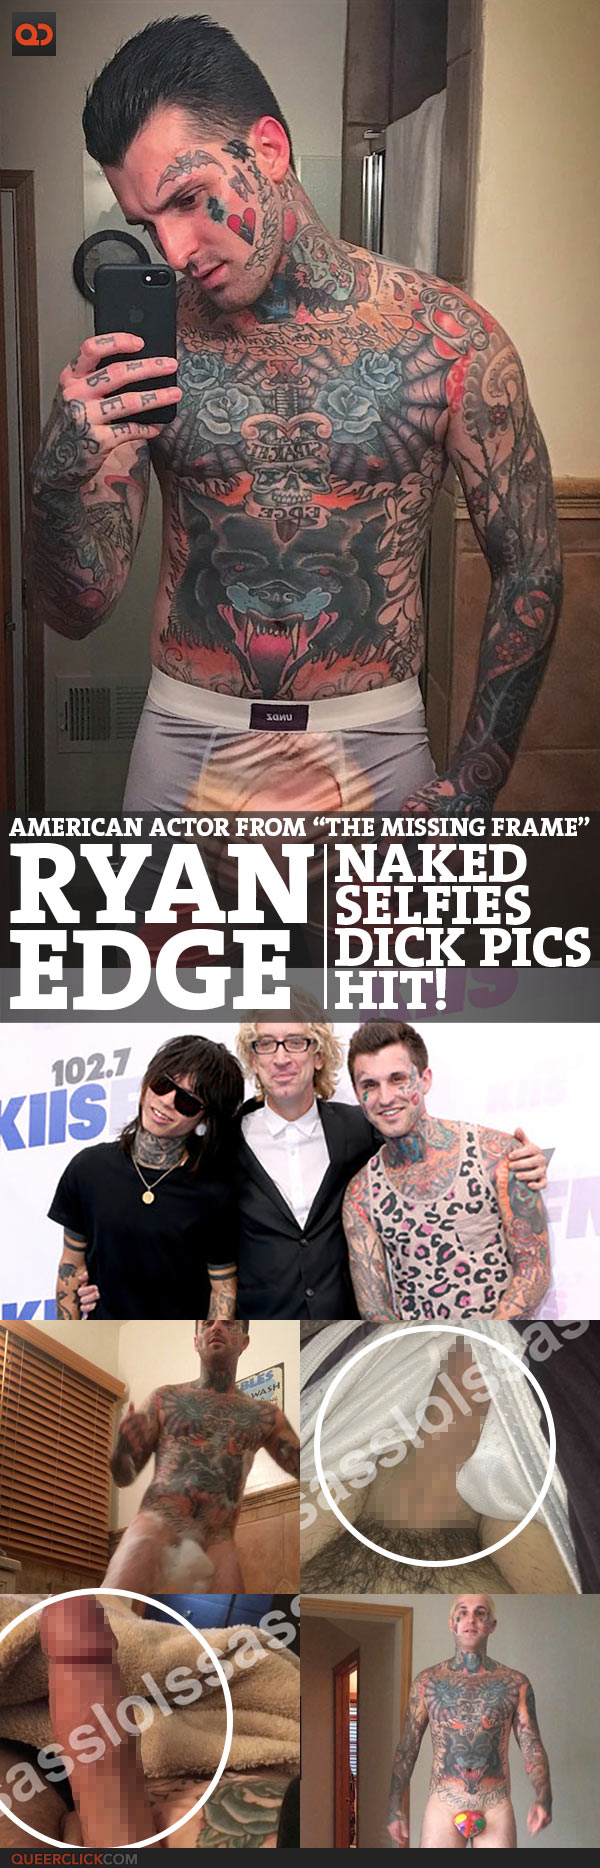 """Ryan Edge, American Actor From """"The Missing Frame"""", Naked Selfies And Dick Pics Hit!"""